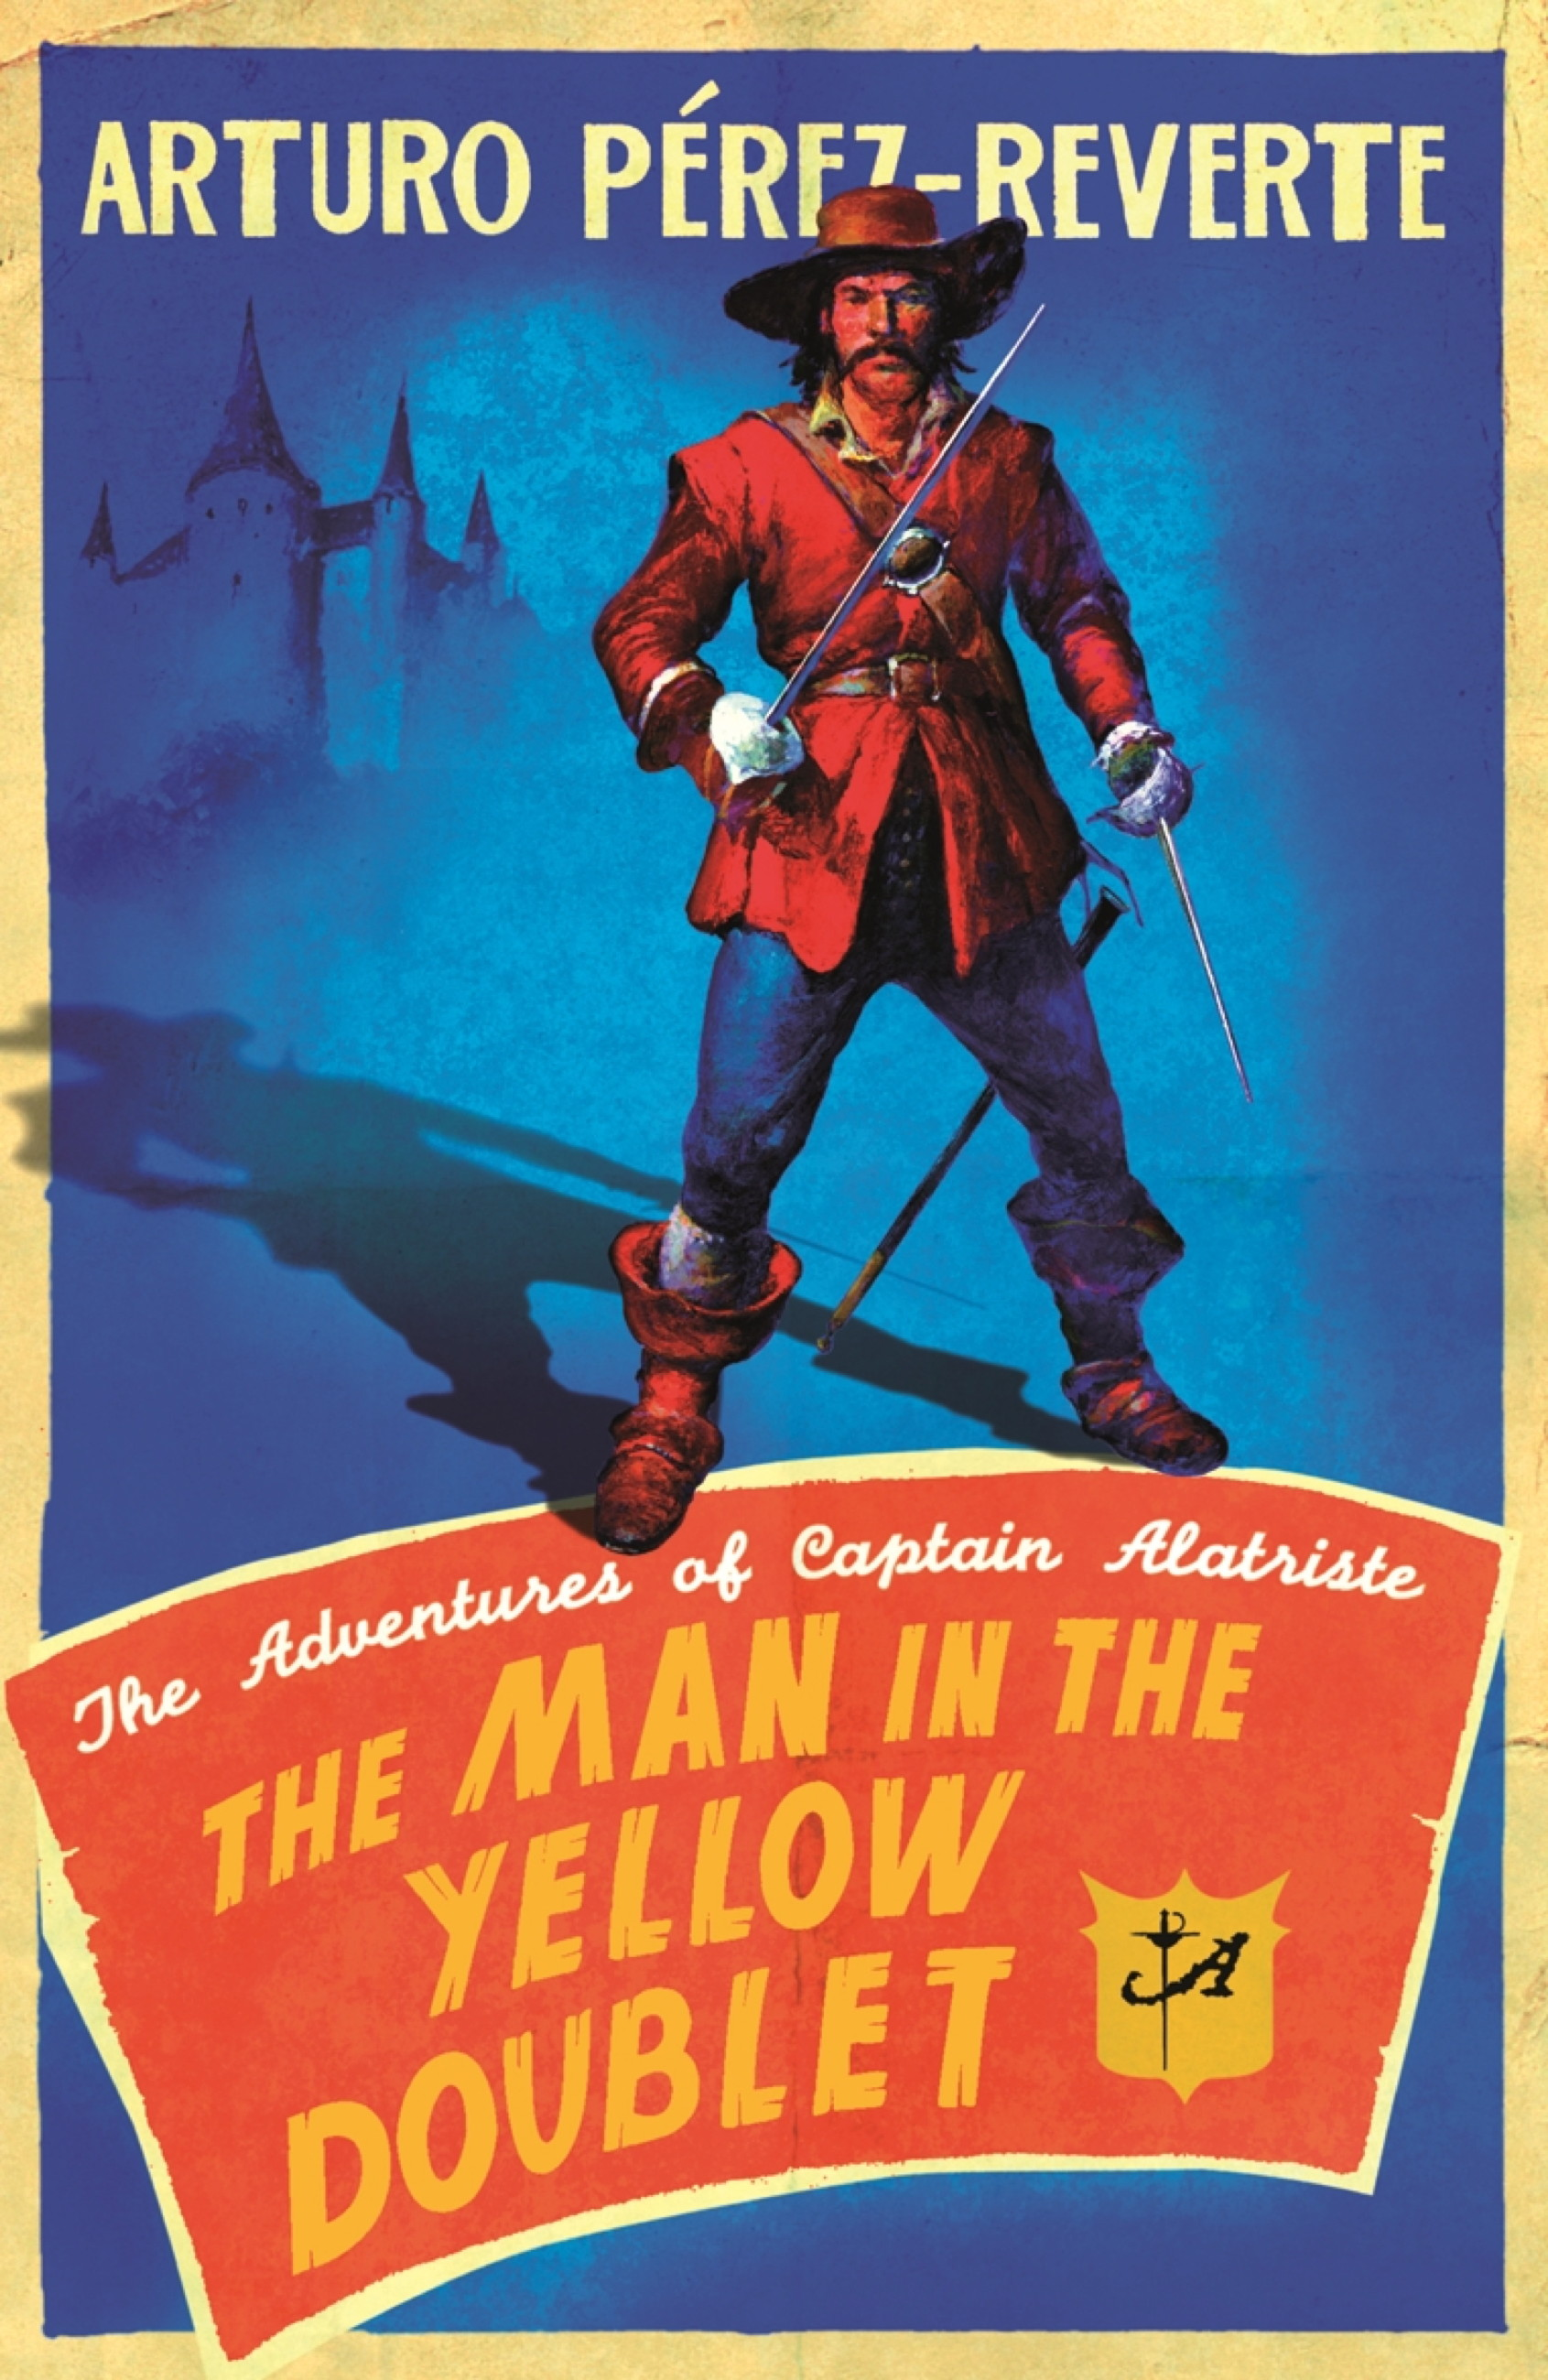 The Man In The Yellow Doublet